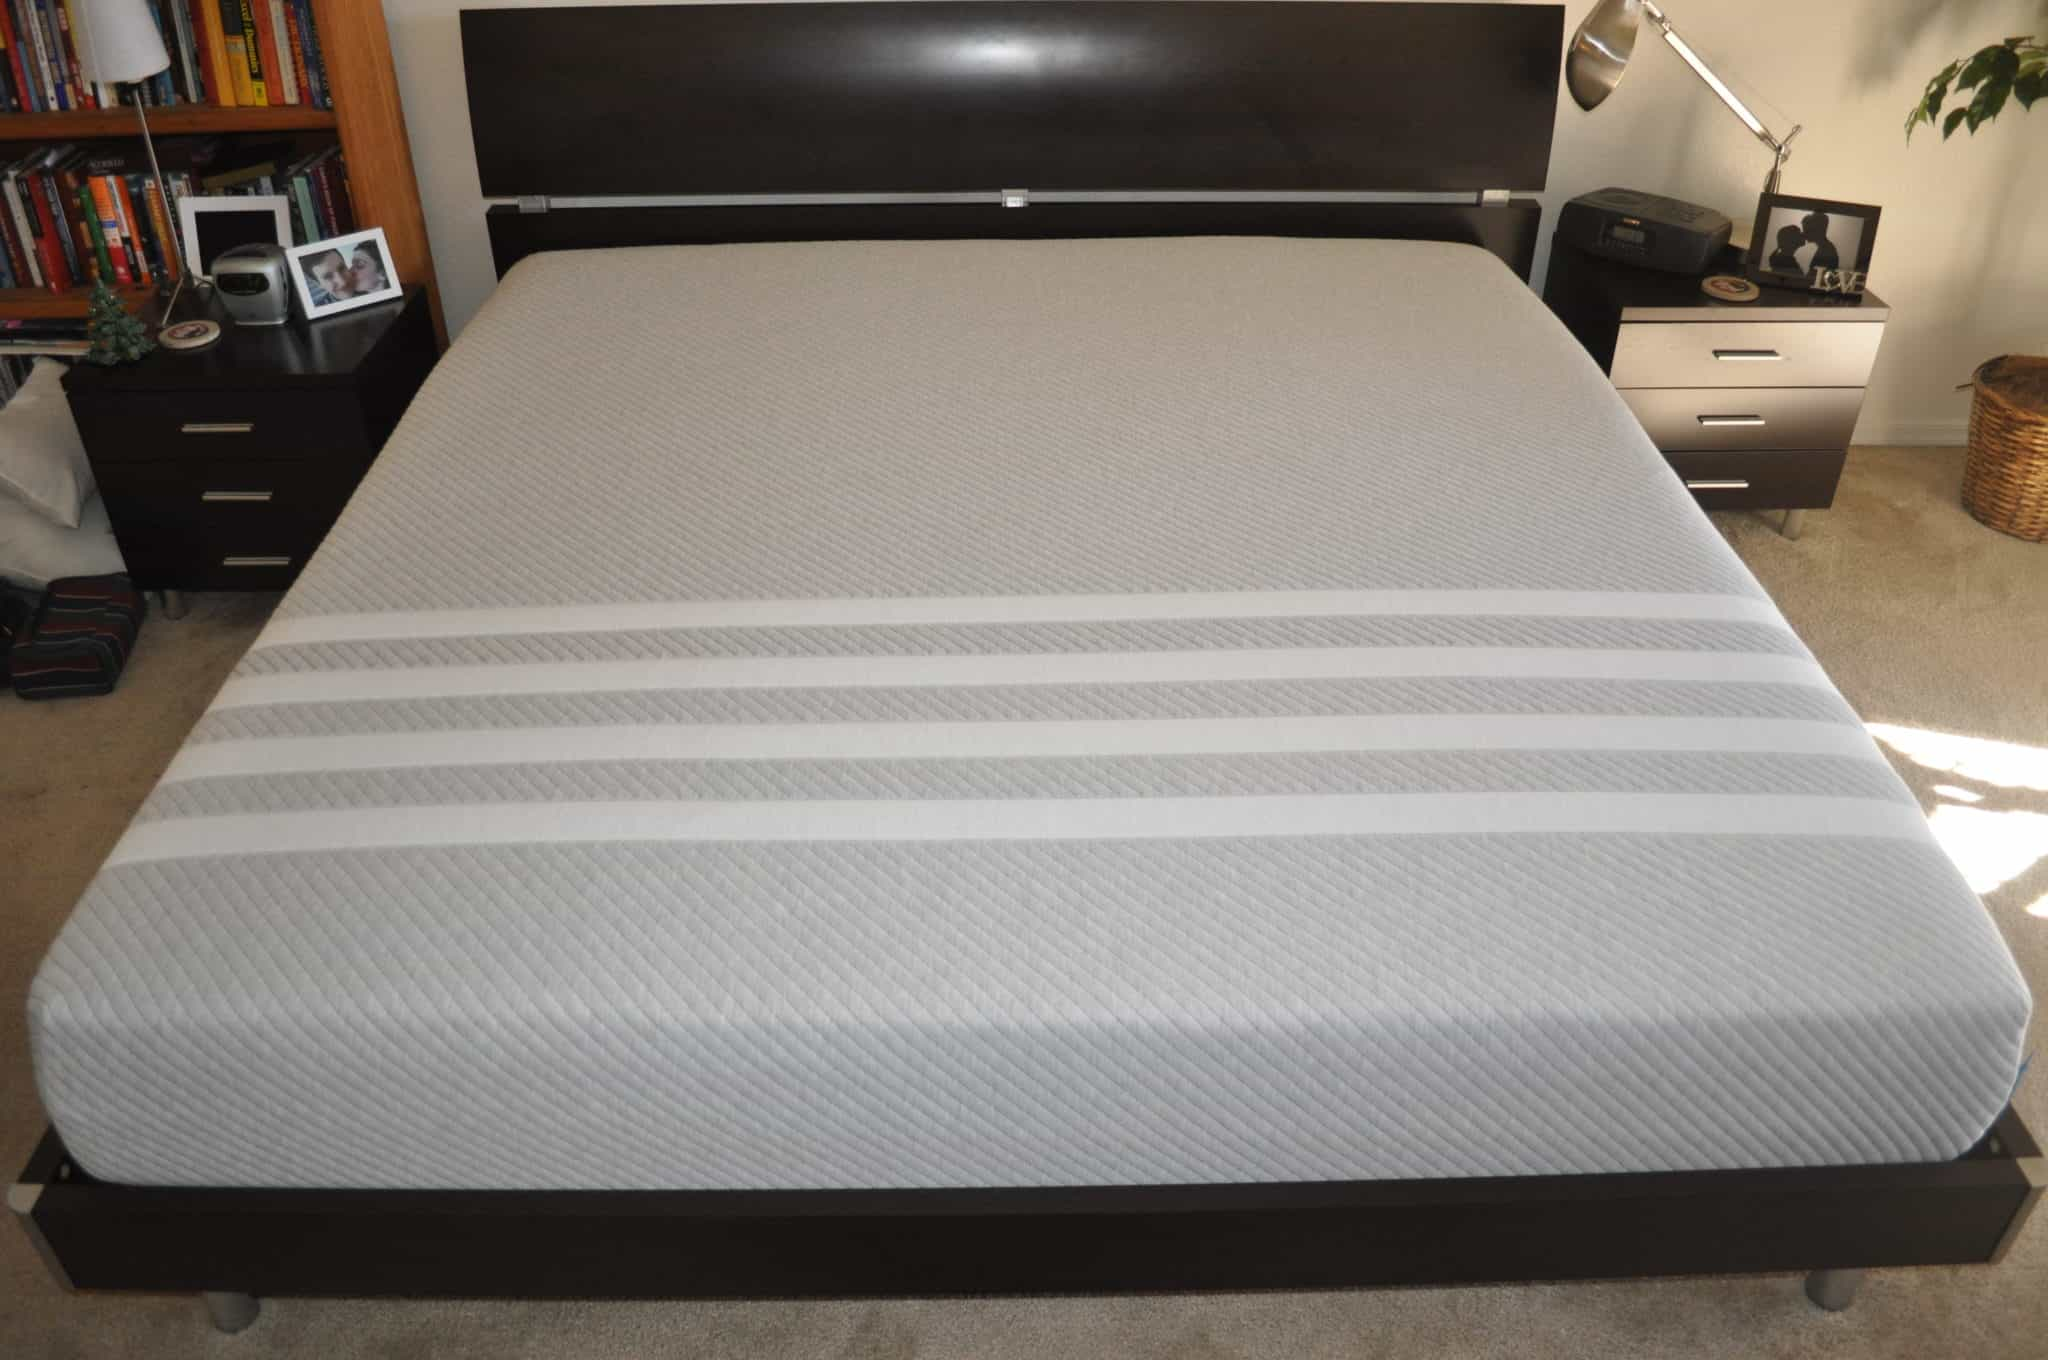 Leesa mattress review sleepopolis for Brooklyn bedding vs leesa